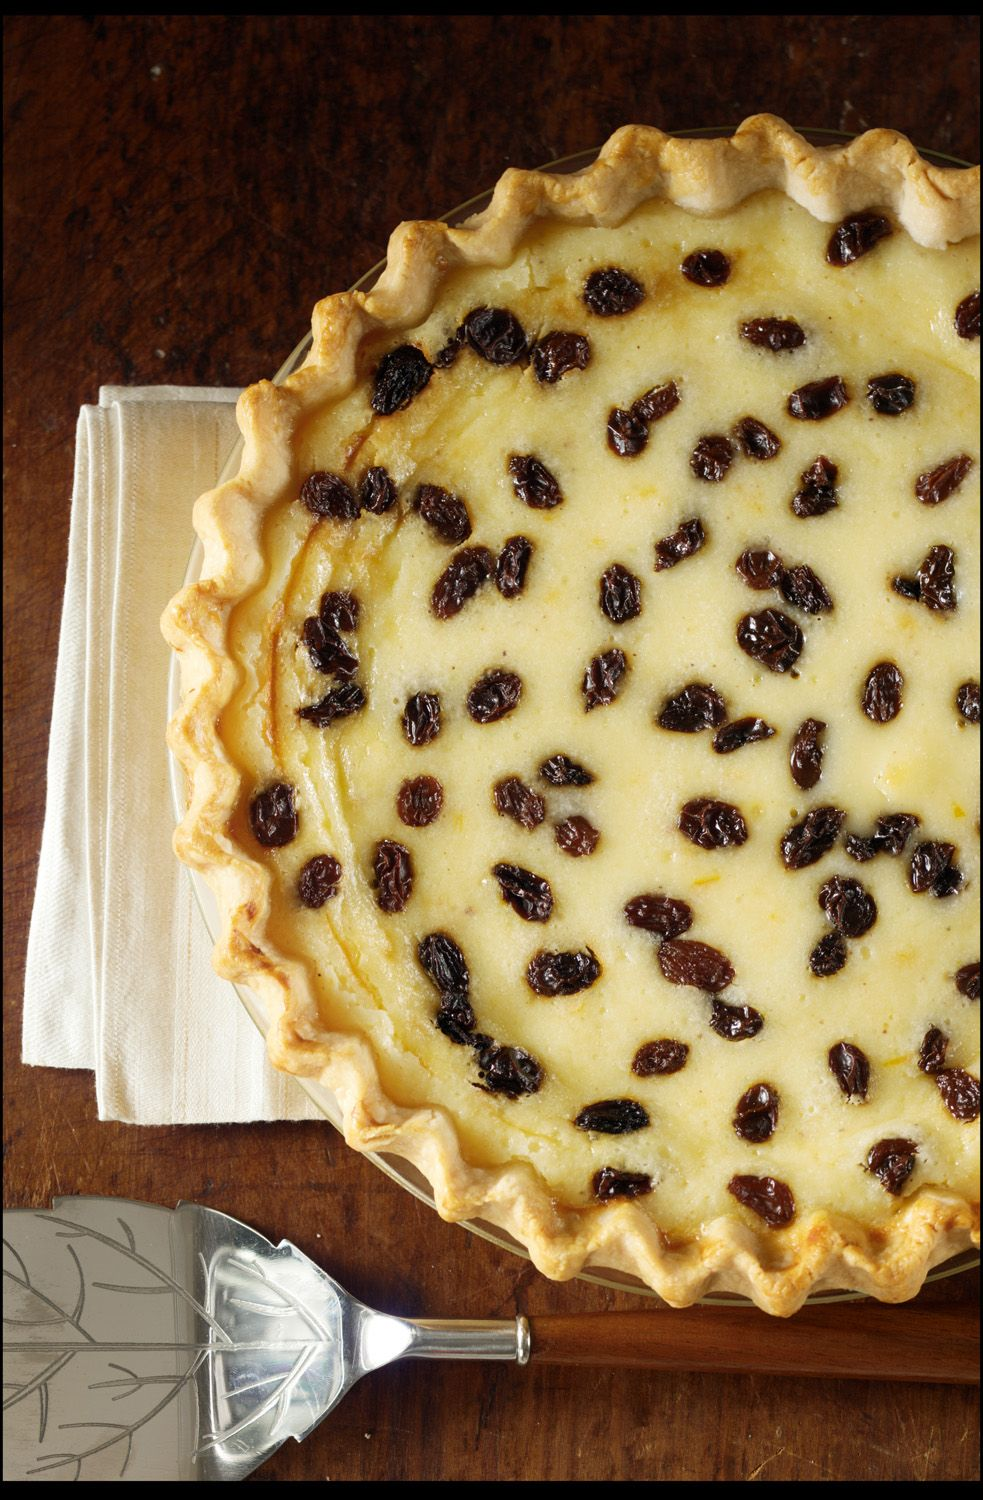 Sour Cream Raisin Pie Recipe With Images Raisin Pie Sour Cream Raisin Pie Raisin Pie Recipe